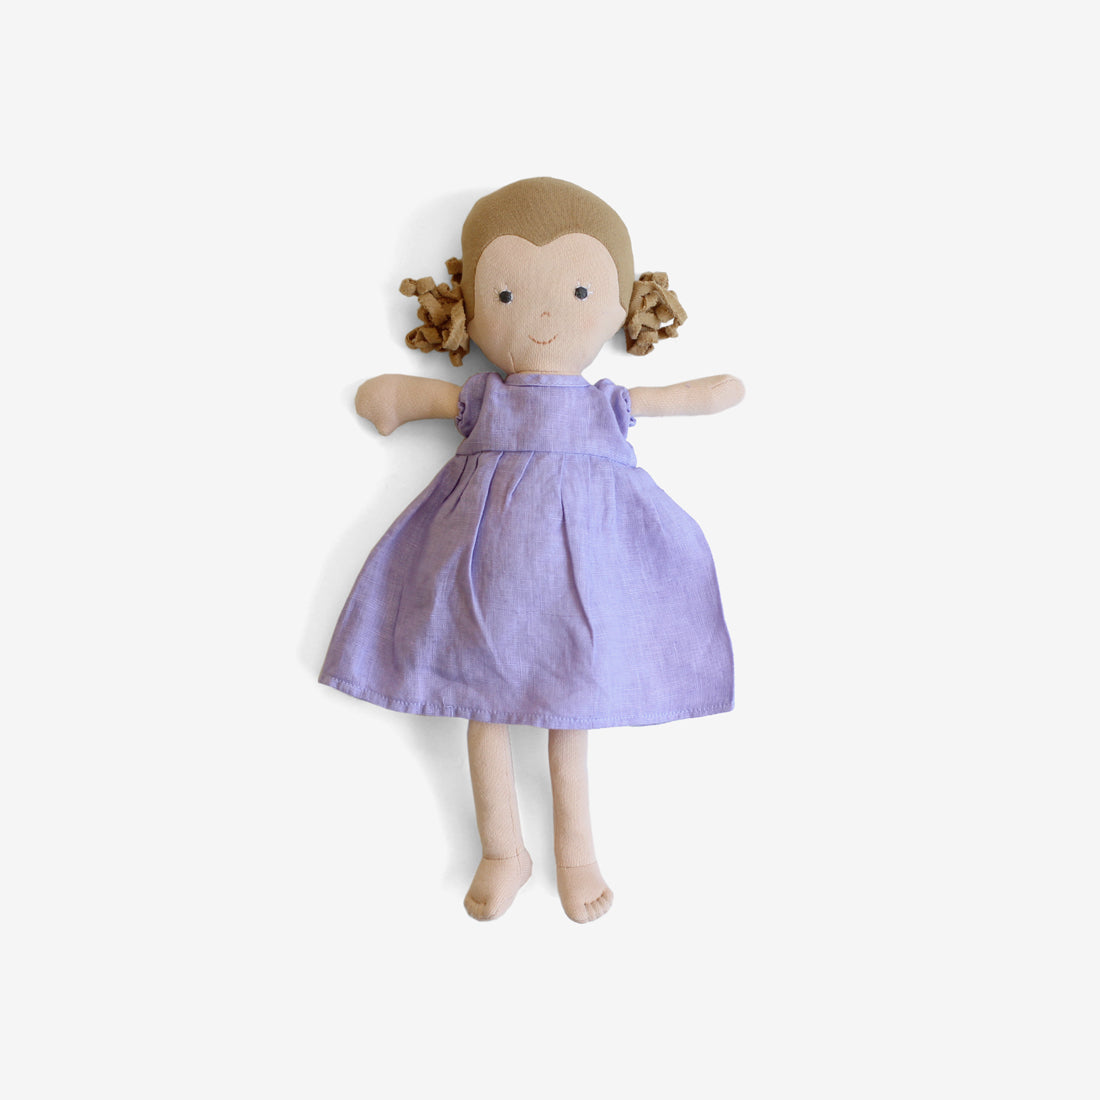 Fern Dolly in Wisteria Linen Dress